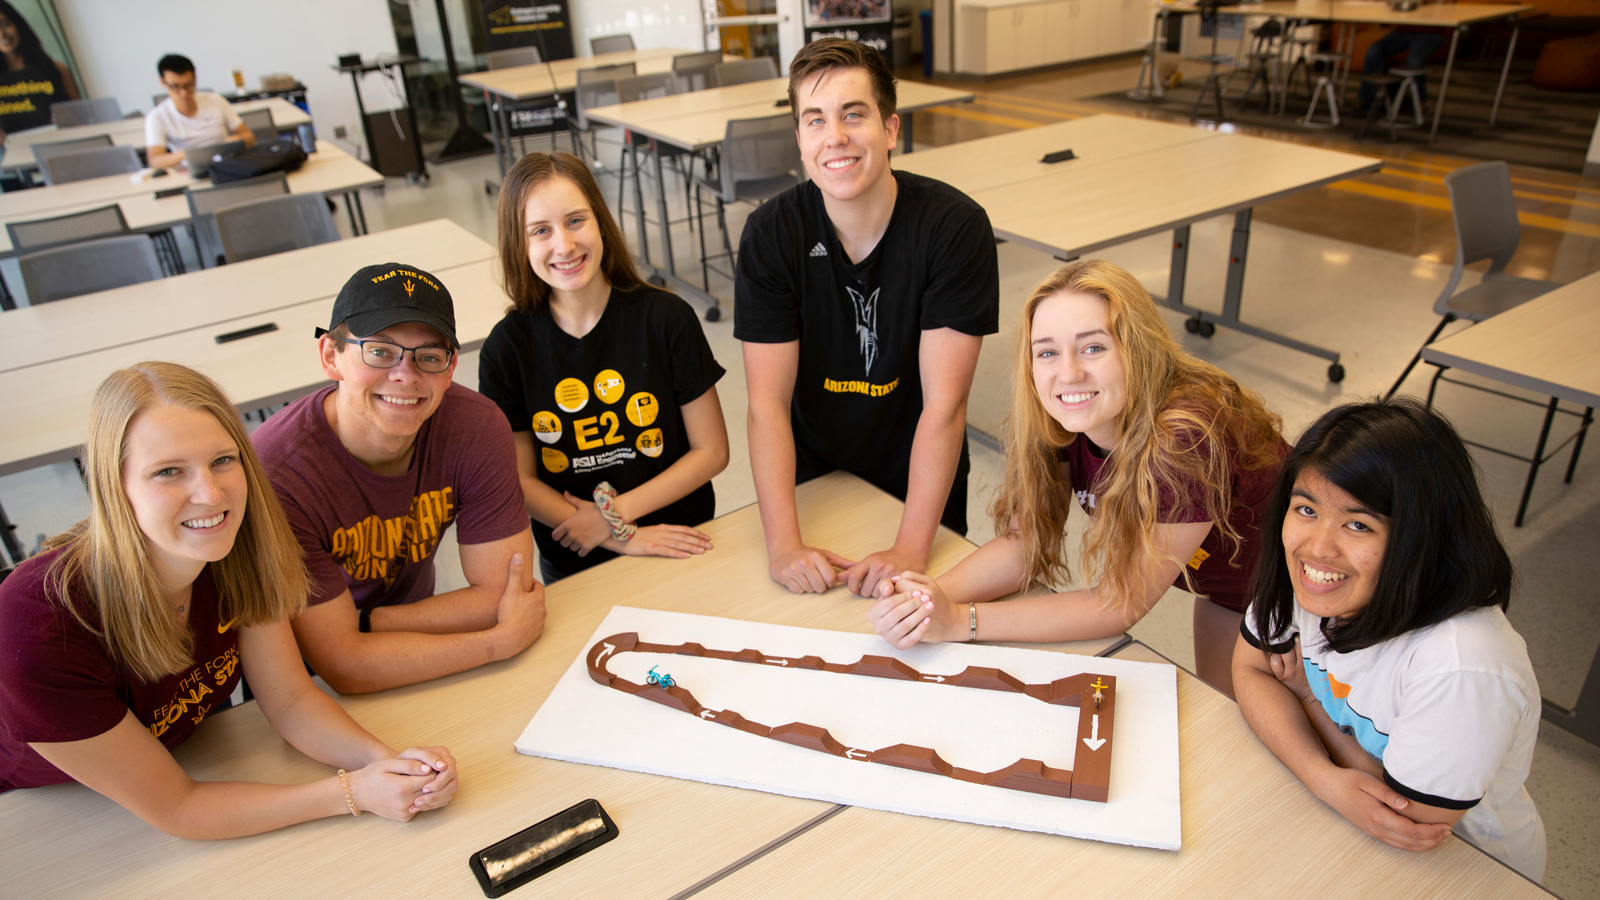 Six students on the Shonto Pump Track team assemble for a photo with their project model